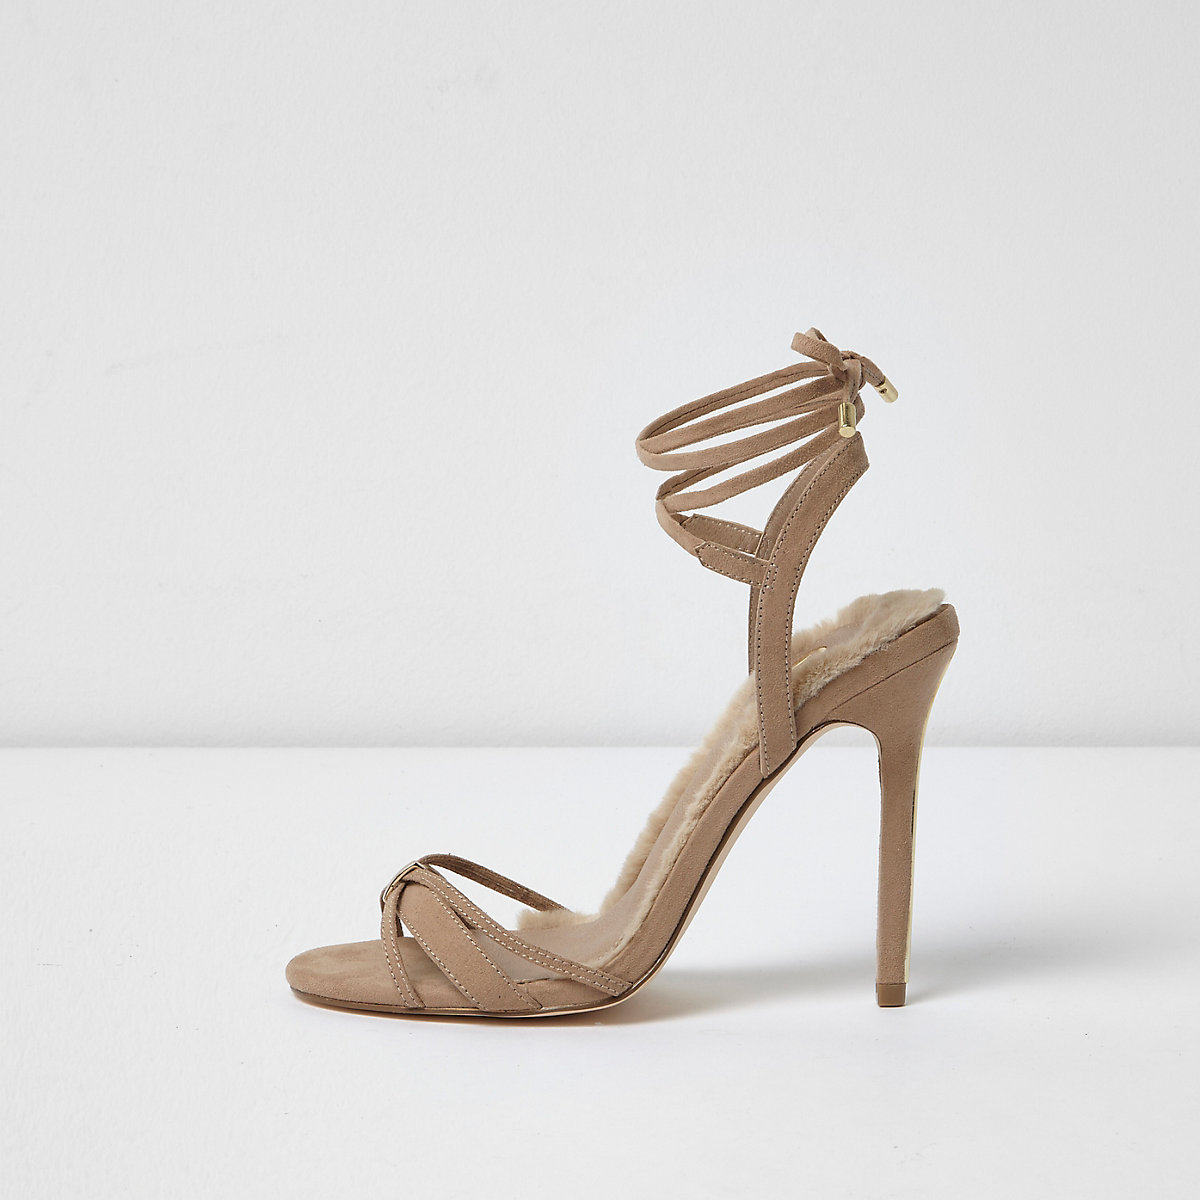 Sand tie up barely there sandals